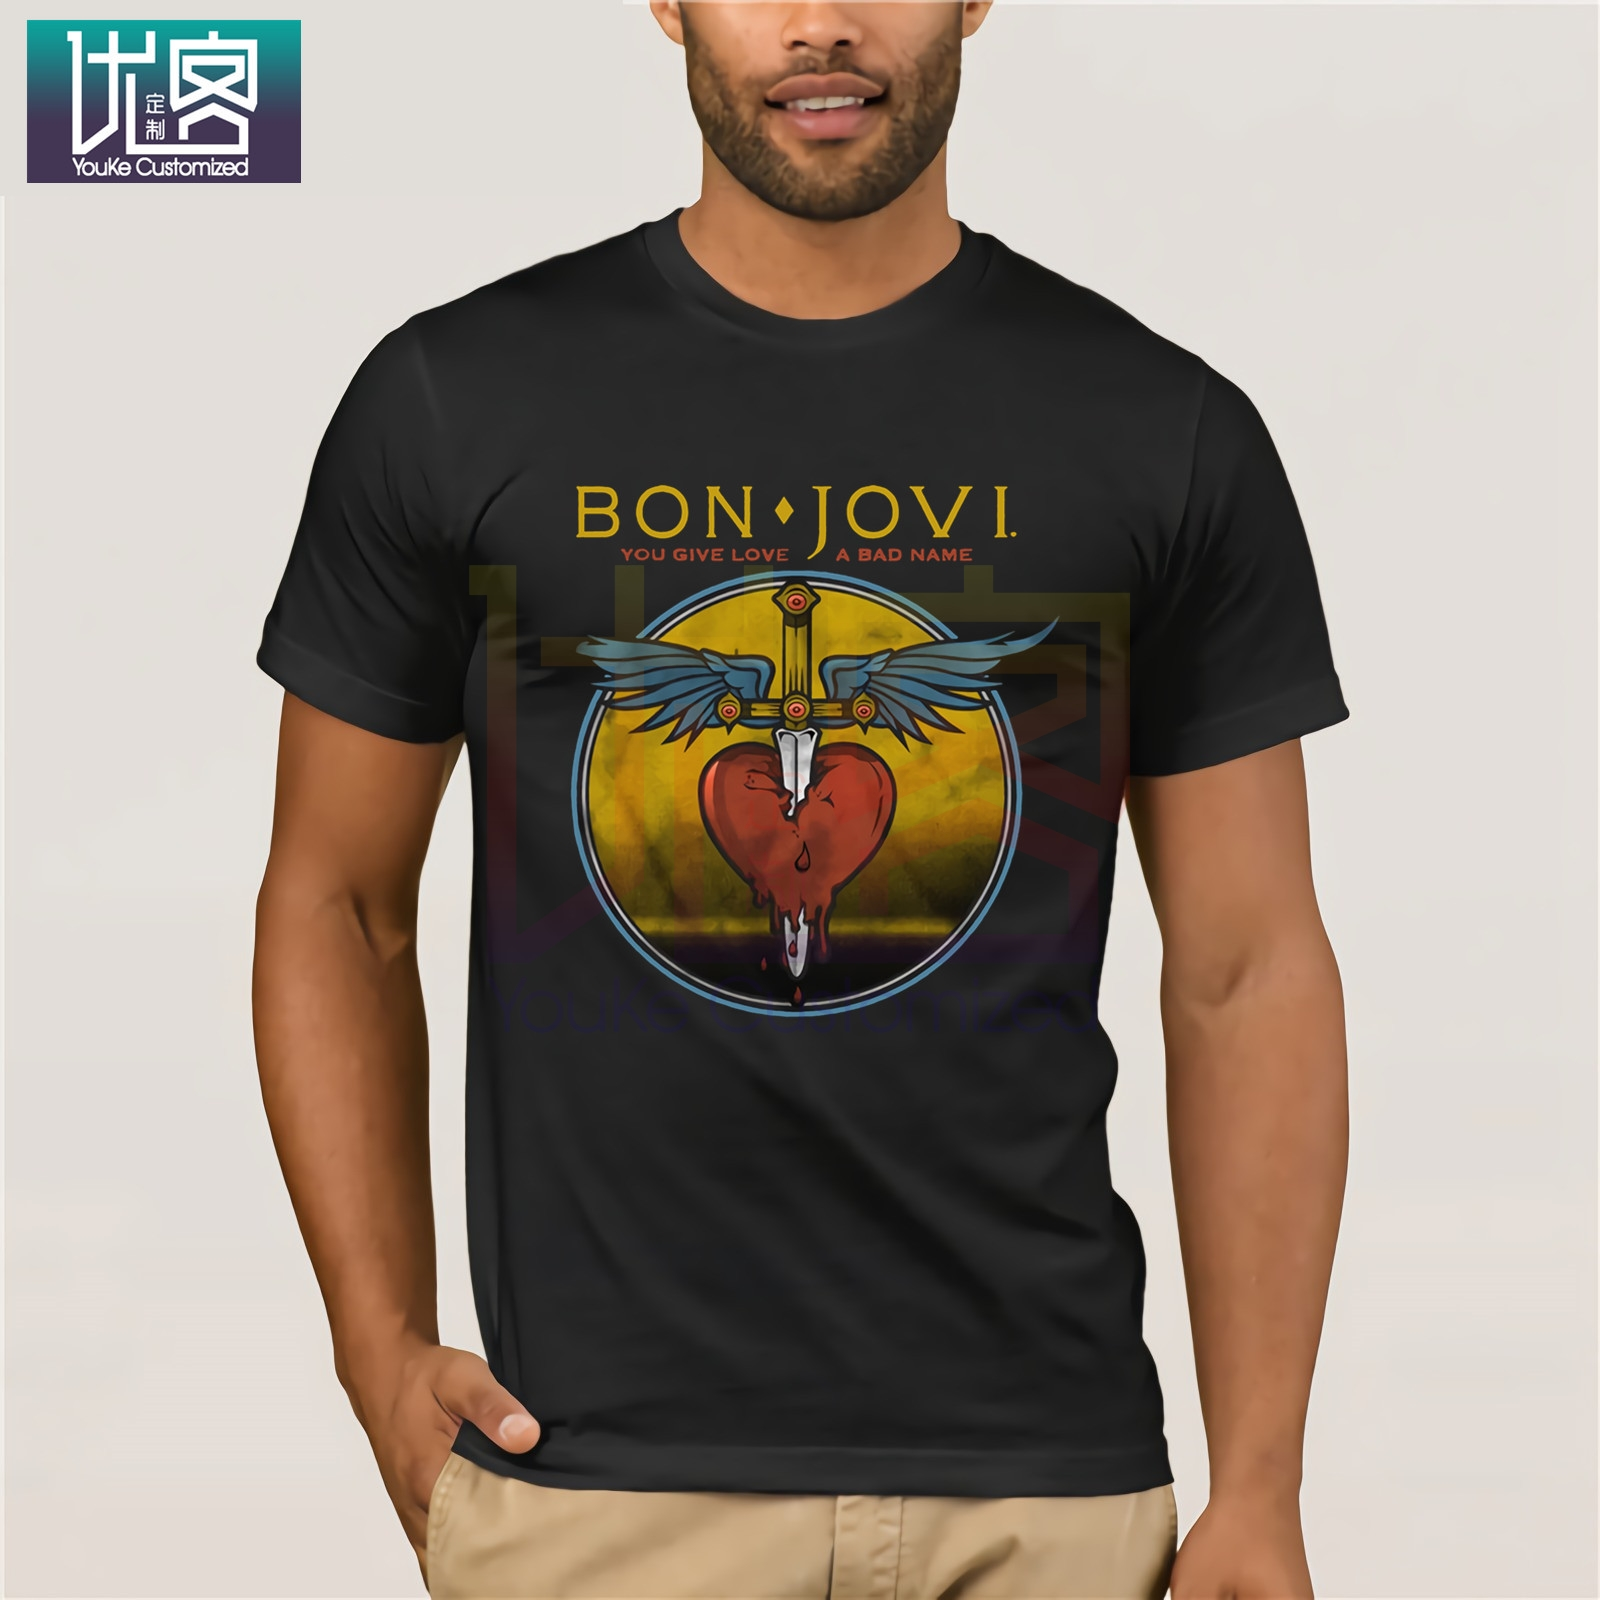 Bon Jovi You Give Love A Bad Name Adult T Shirt Rock Music Casual Short Sleeve Top Humor Tee Shirt 100% Cotton Tops Graphic